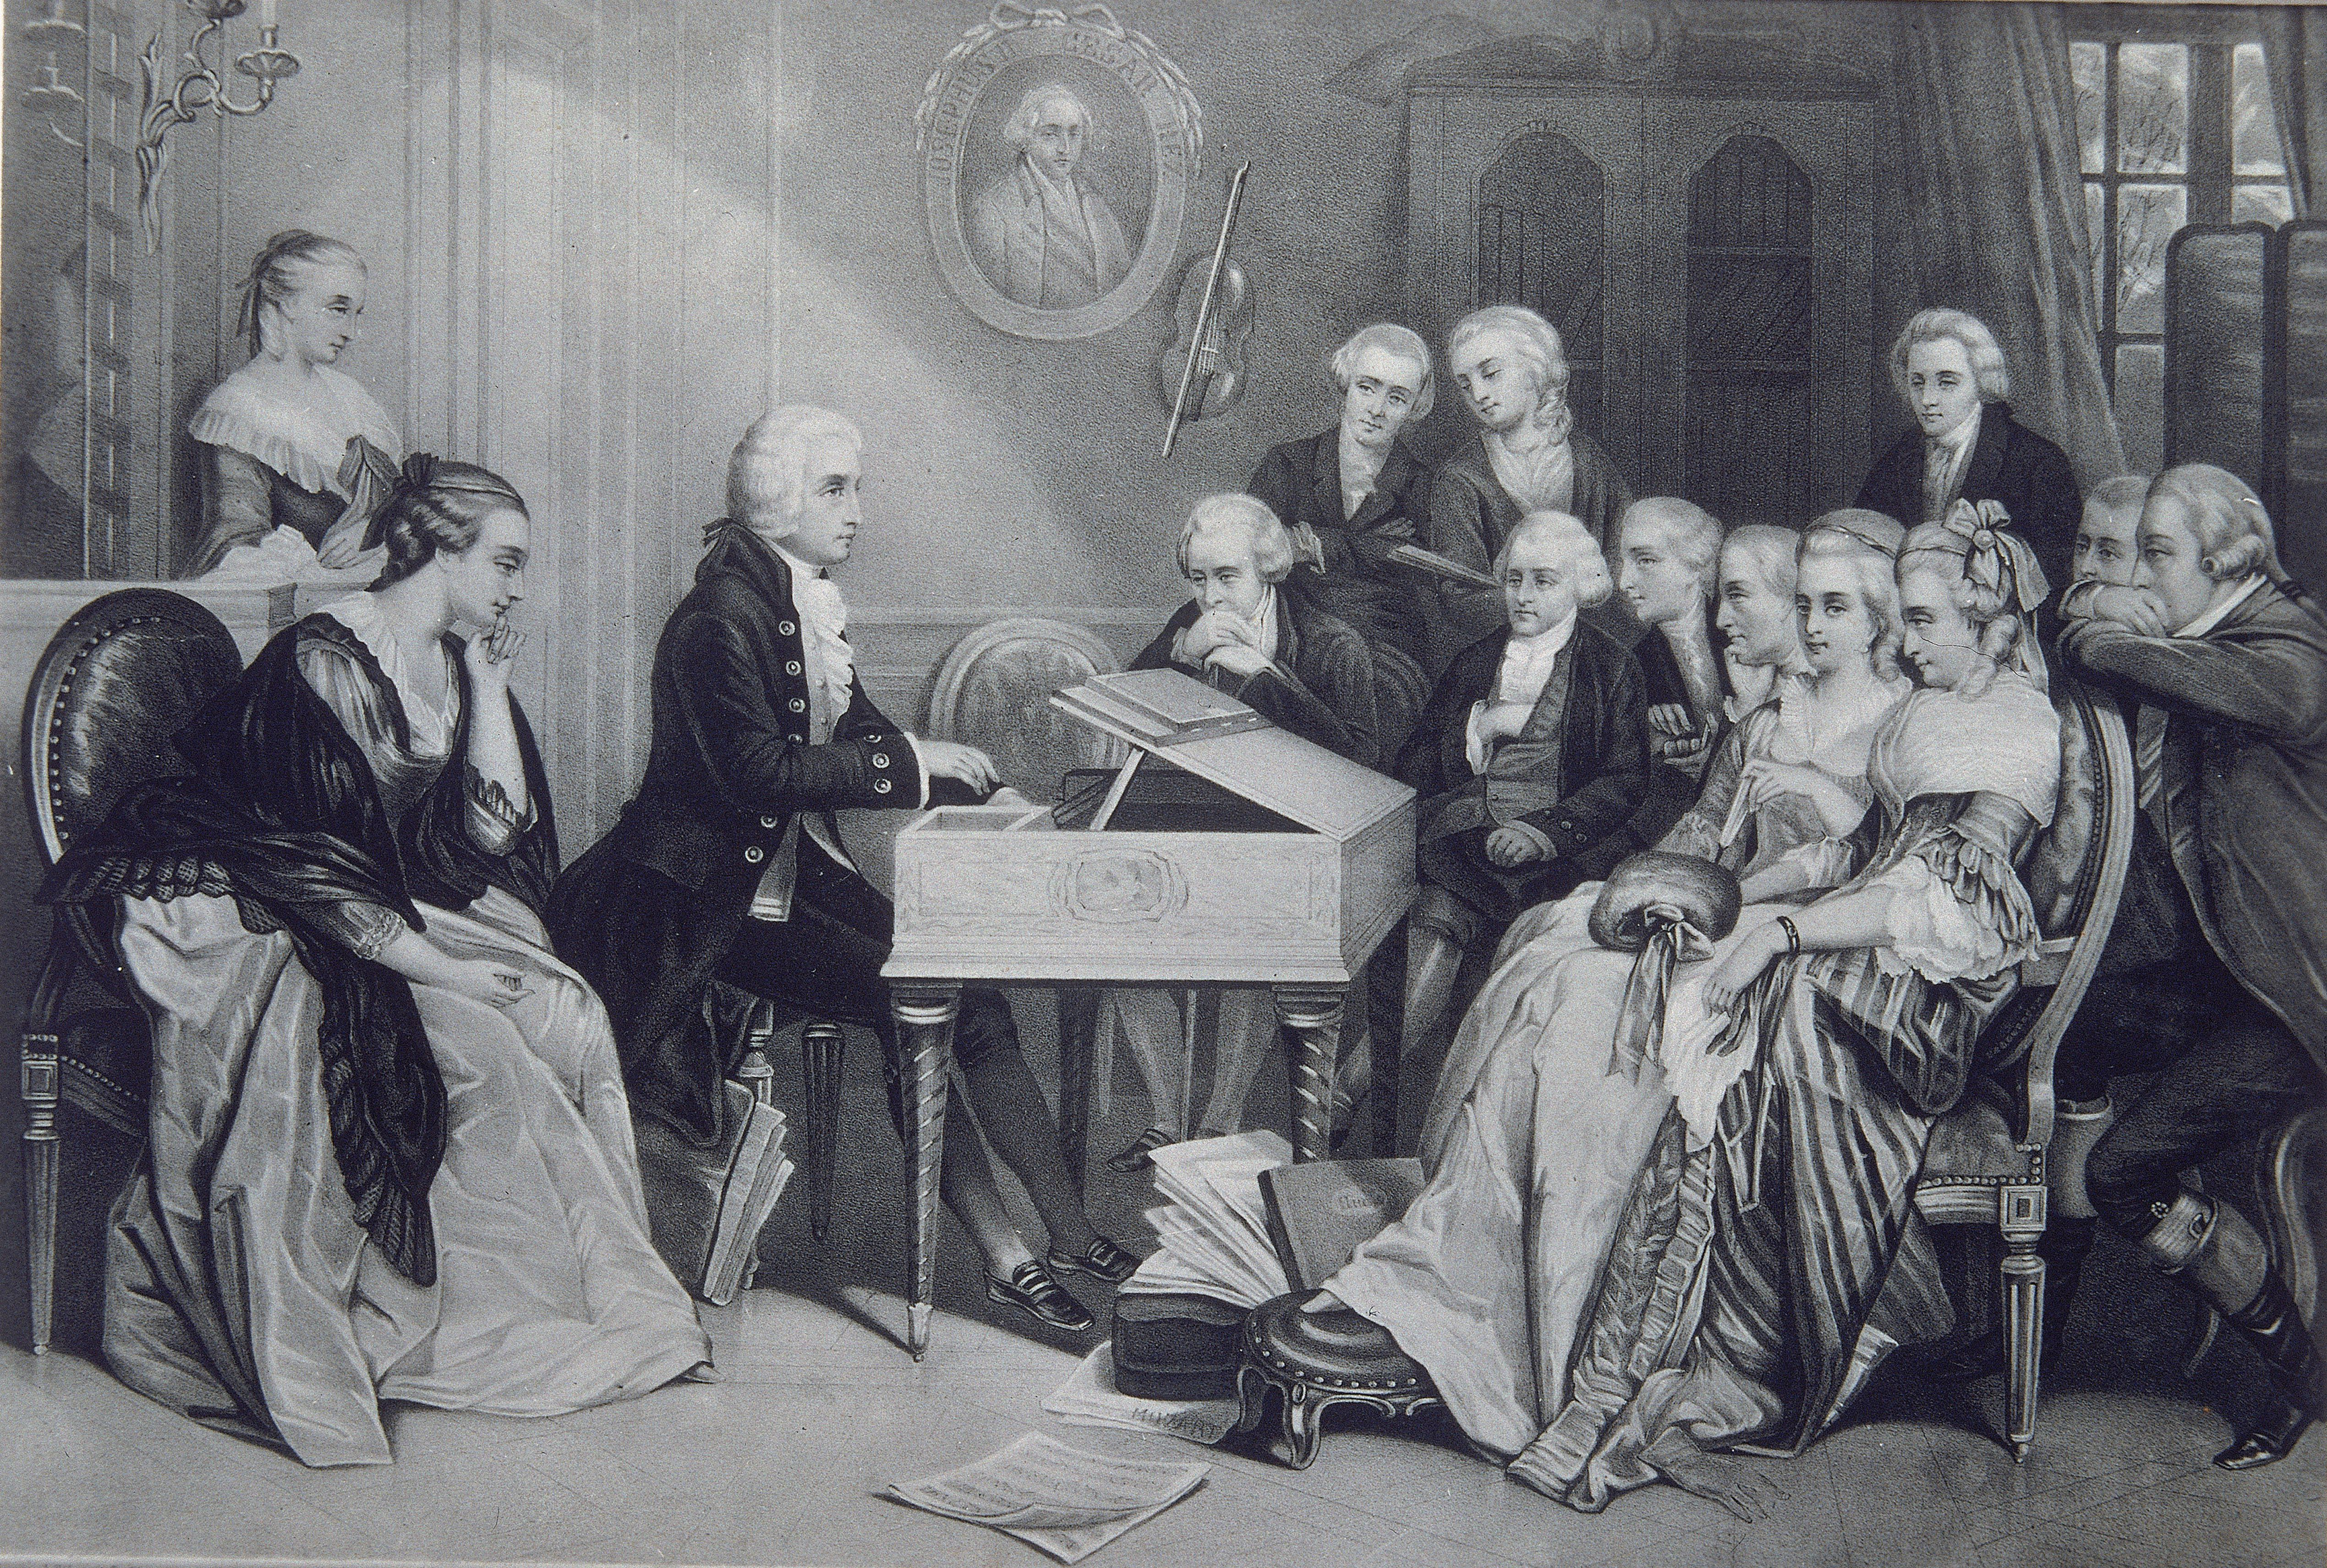 The Beethoven, Haydn and Mozart Connection